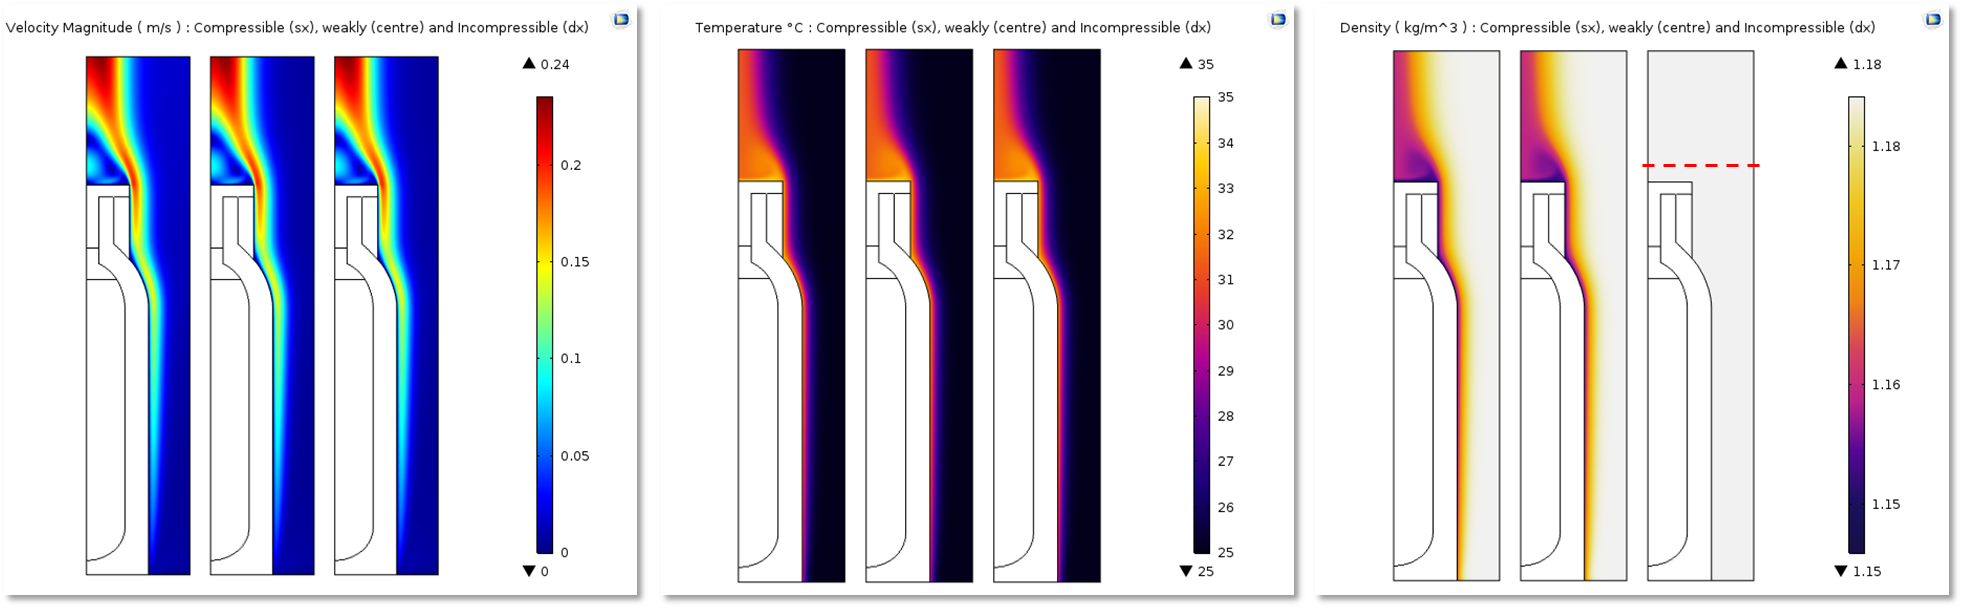 Three plots that compare velocity, temperature, and density fields for different compressibility options.